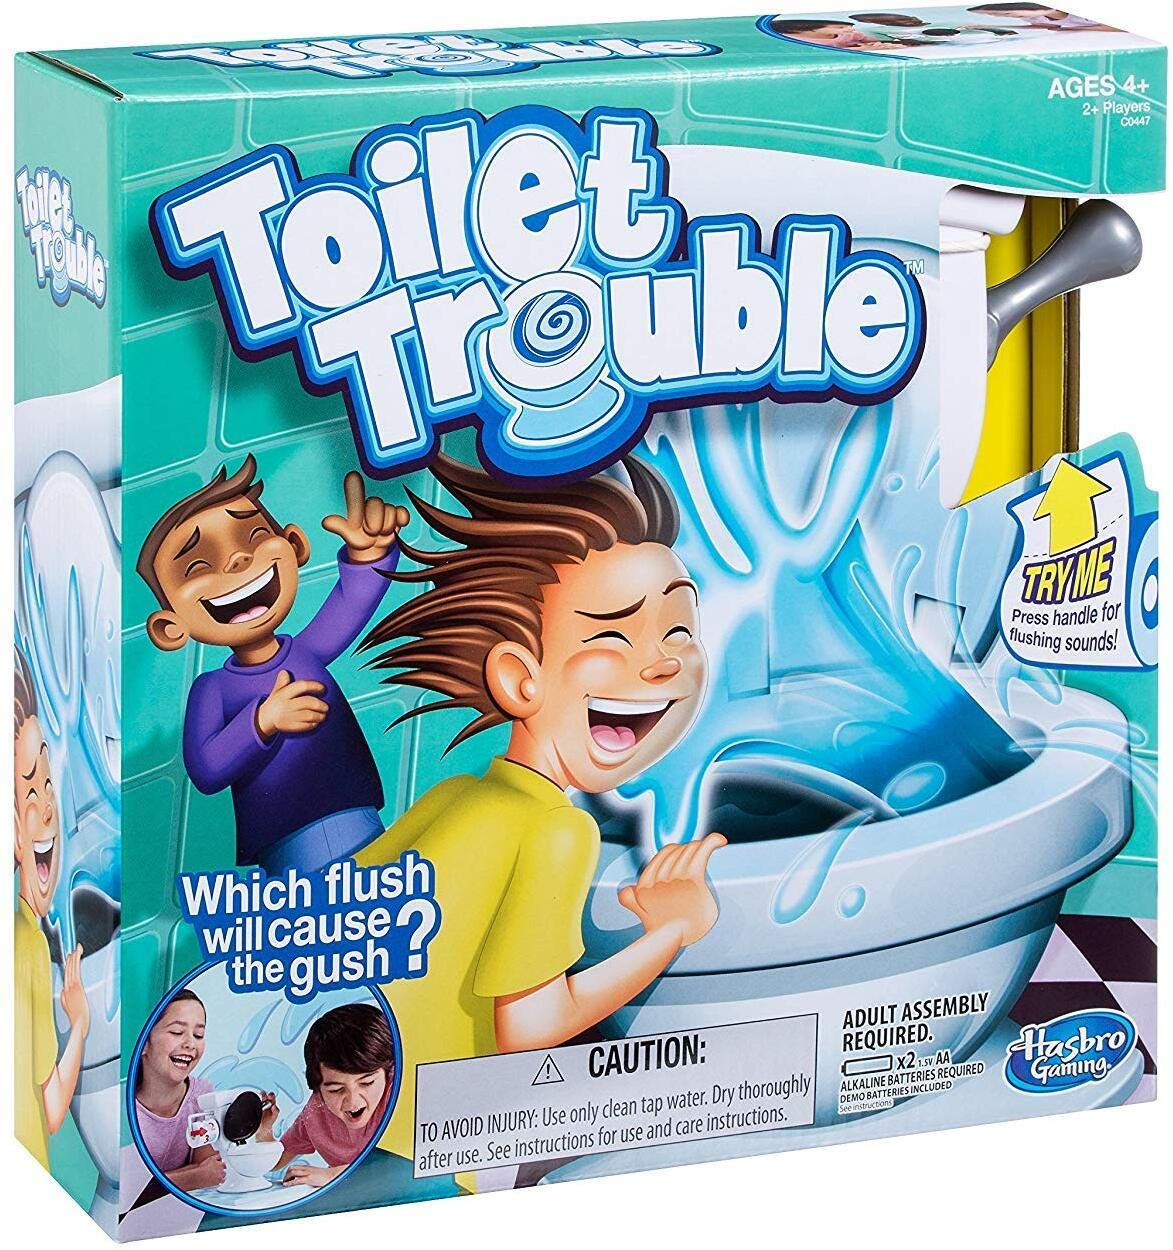 Review of Hasbro Games Toilet Trouble